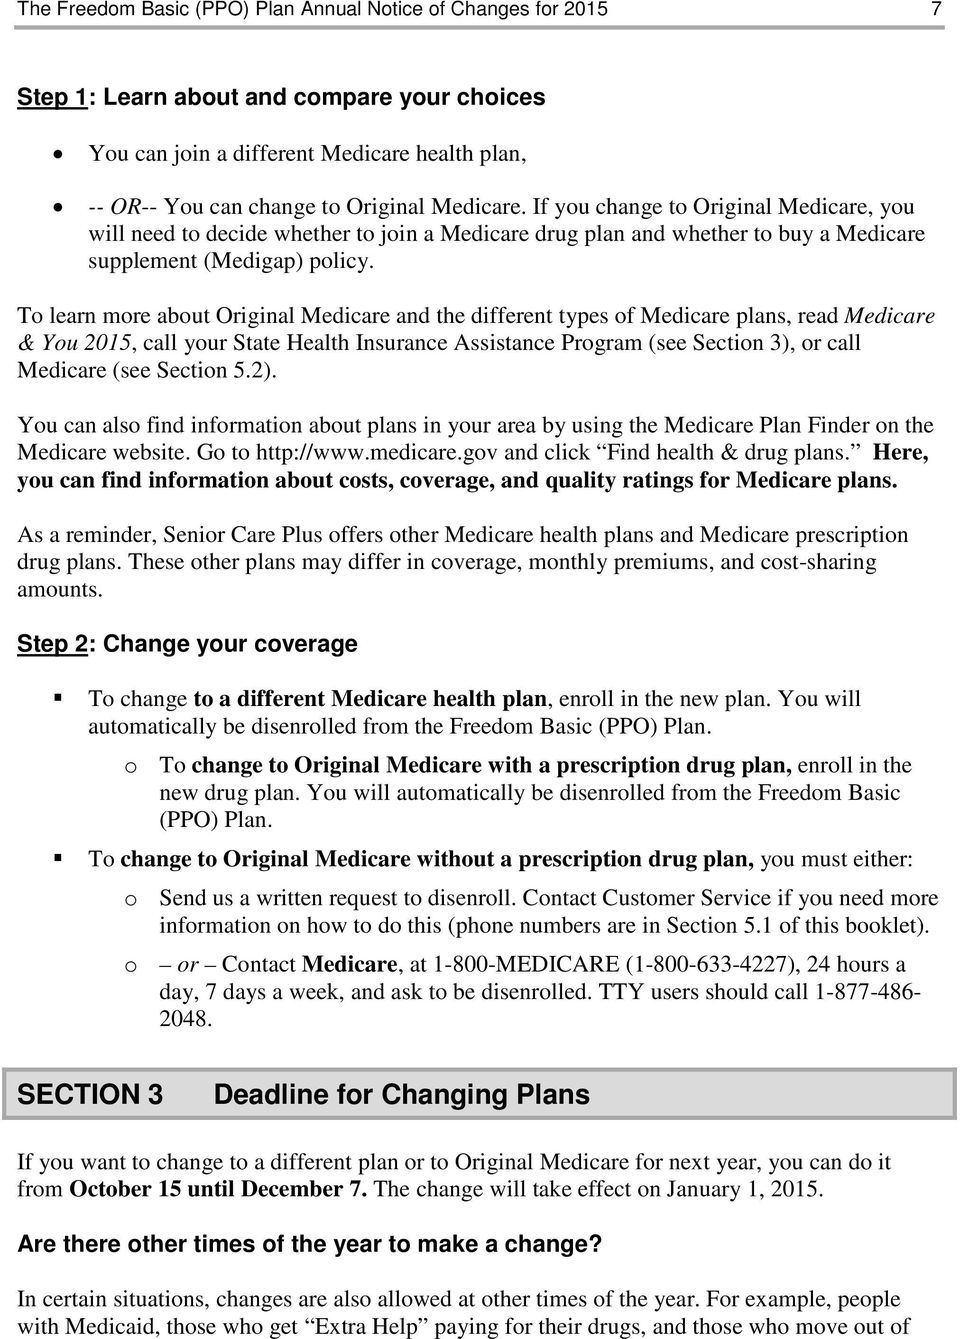 To learn more about Original Medicare and the different types of Medicare plans, read Medicare & You 2015, call your State Health Insurance Assistance Program (see Section 3), or call Medicare (see